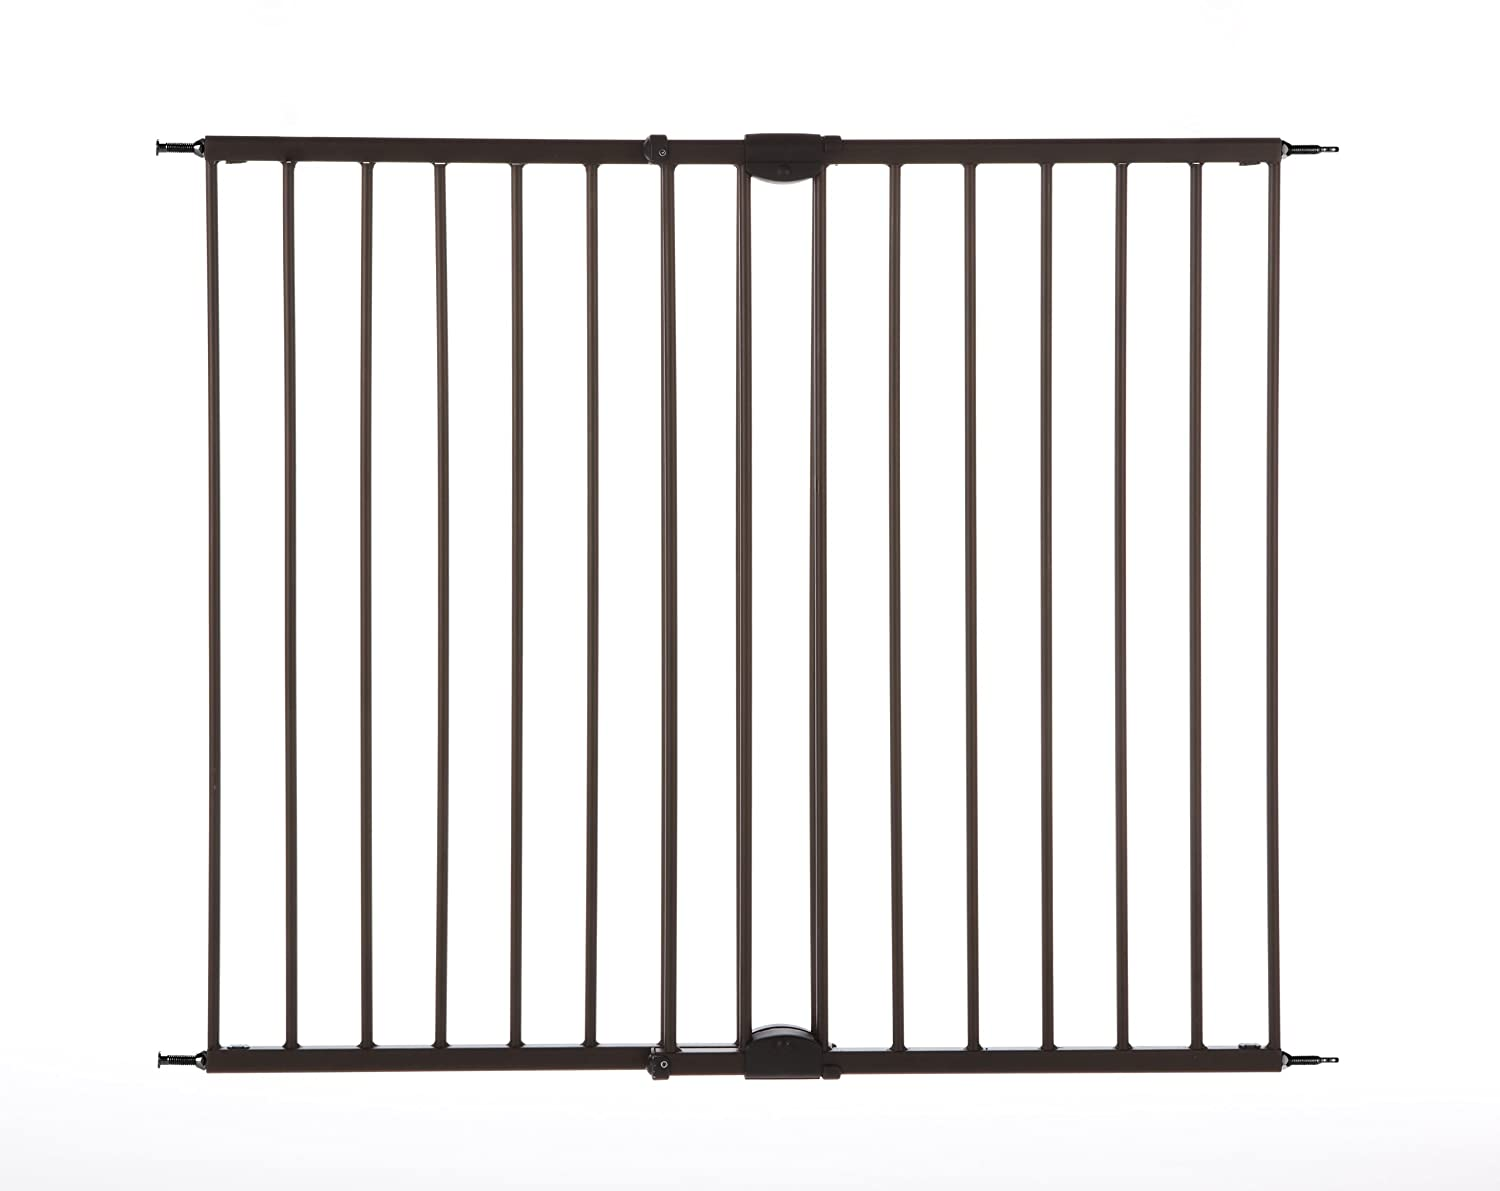 """Easy Swing & Lock Gate"" by North States: Ideal for standard or wider stairways, swings to self-lock. Hardware mount. Fits openings 28.68"" to 47.85"" wide (31"" tall, Bronze) North States Industries 4950"